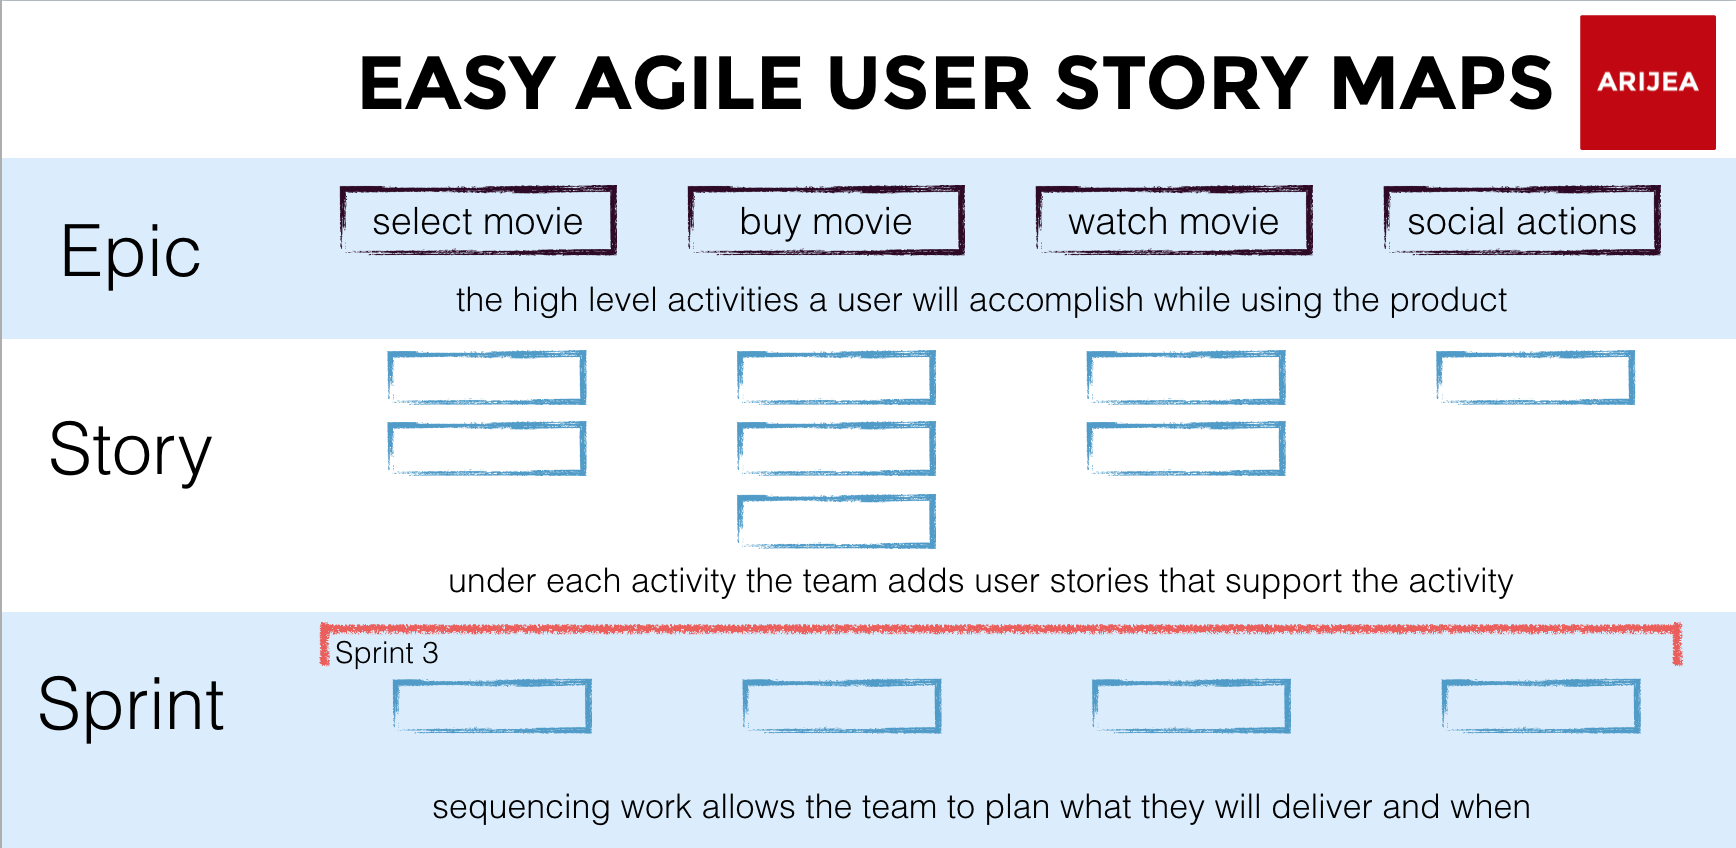 Anatomy Of An Agile User Story Map